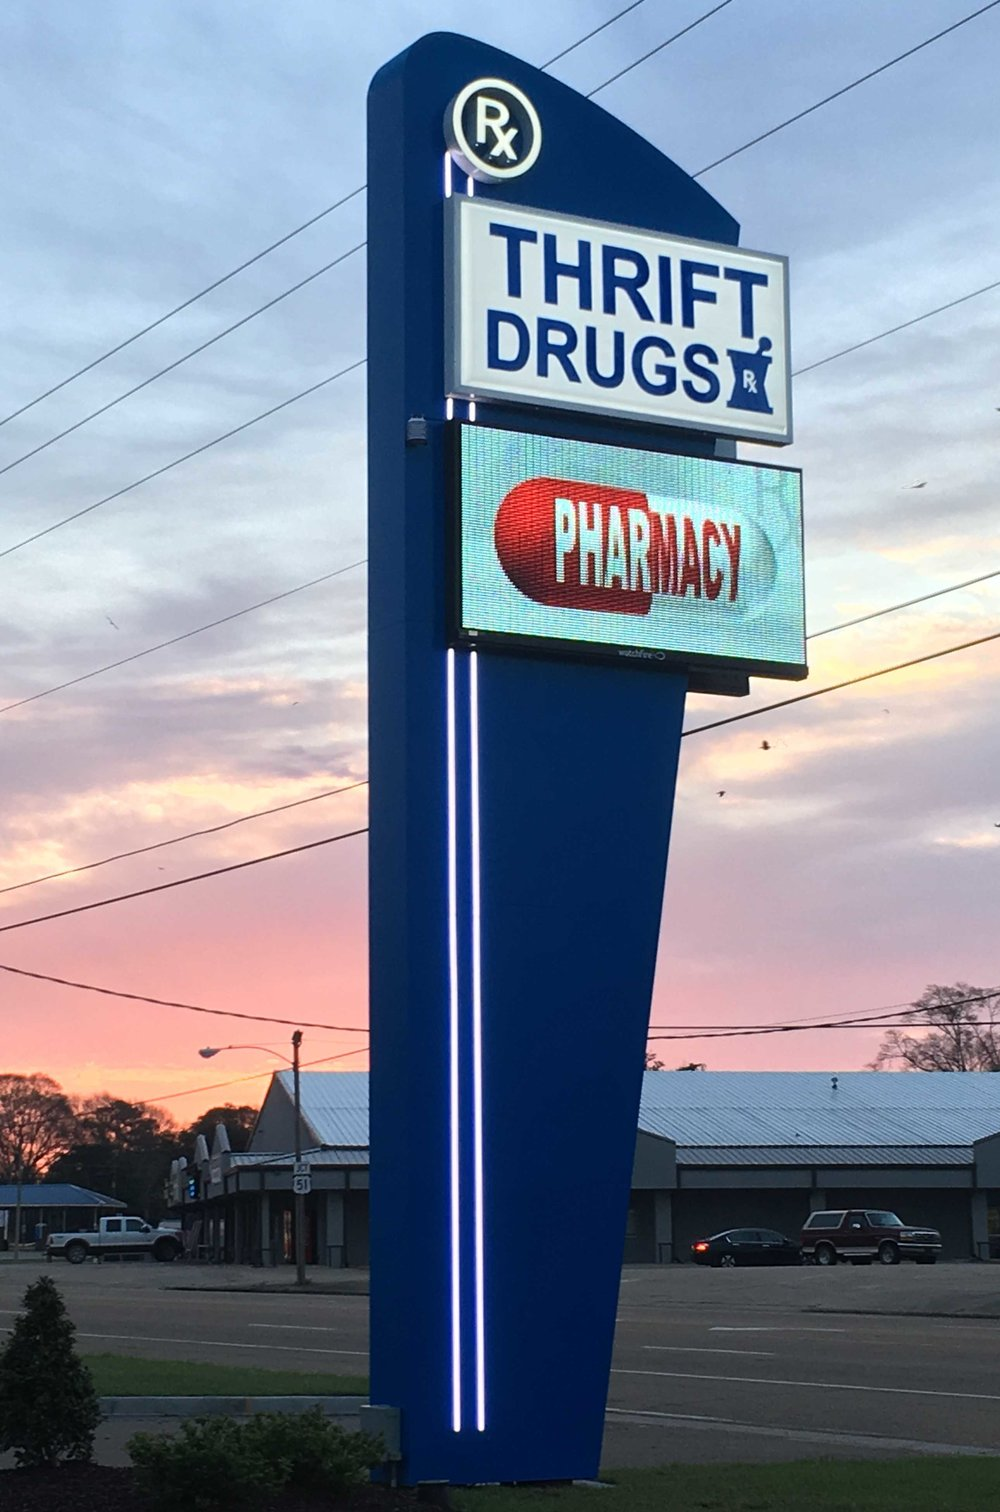 Thrift Drugs_208 West Presley Blvd_McComb, MS  (12).JPG